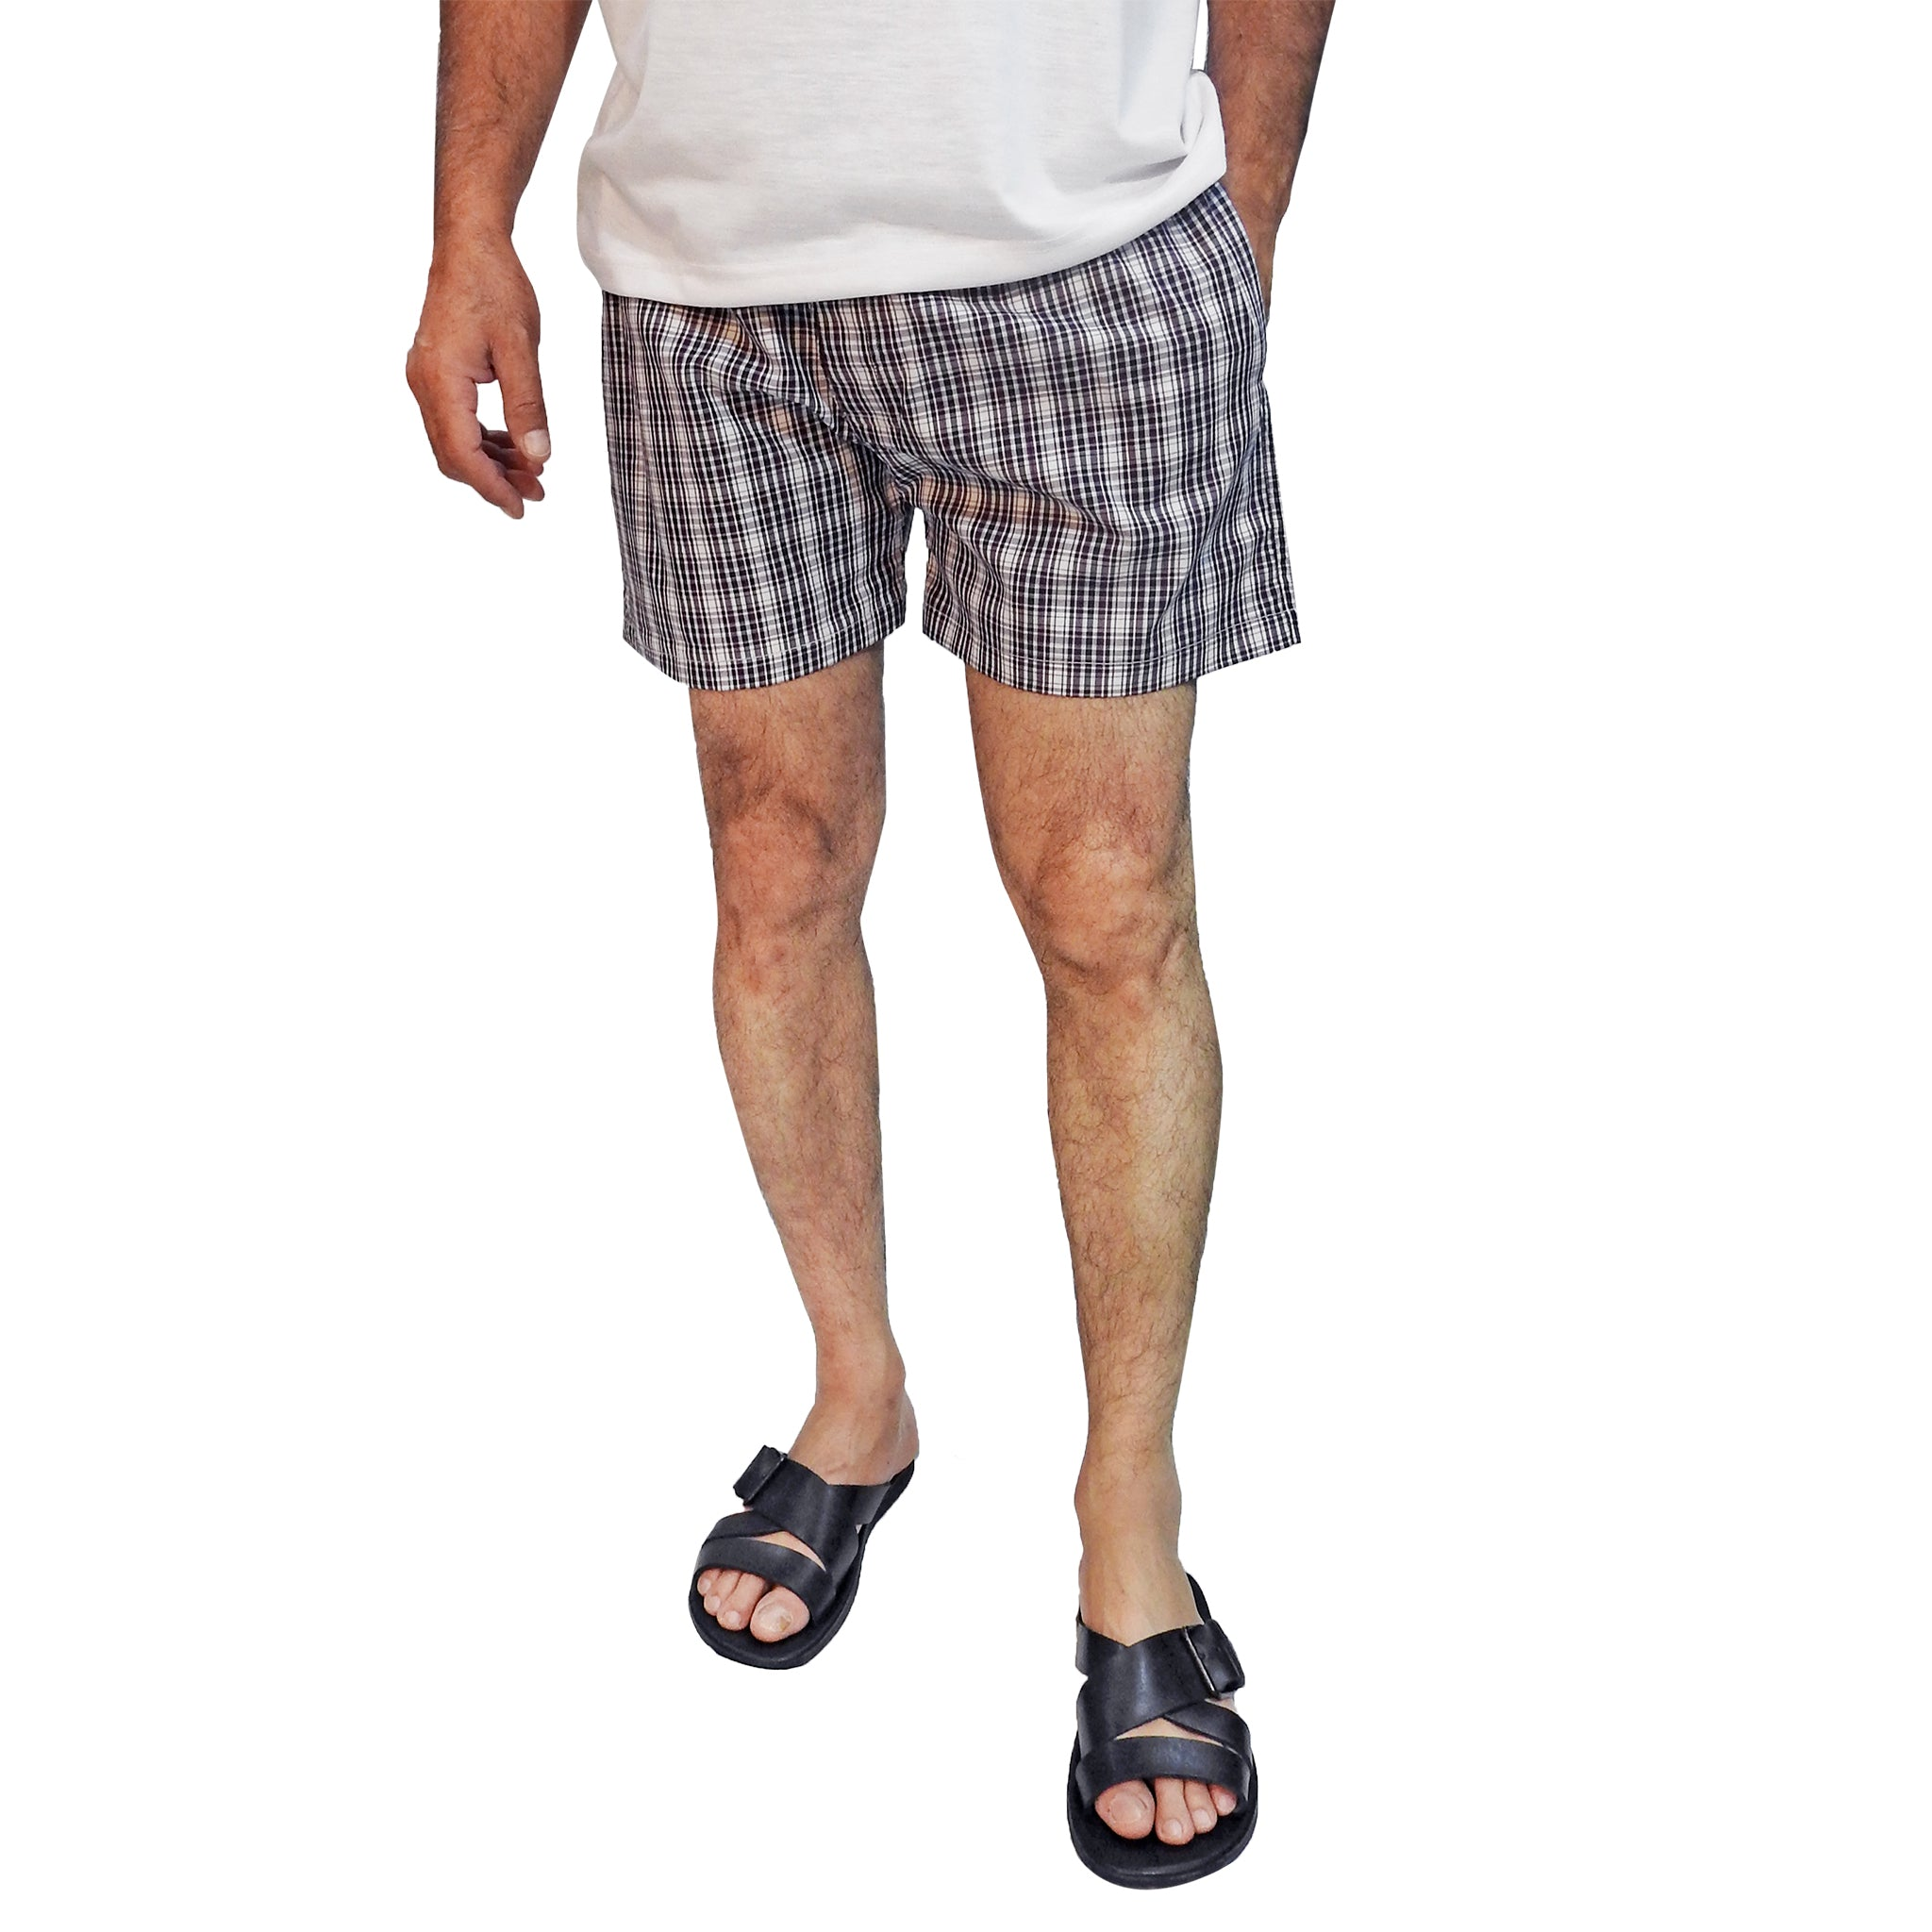 boxer-shorts-for-men-online-india